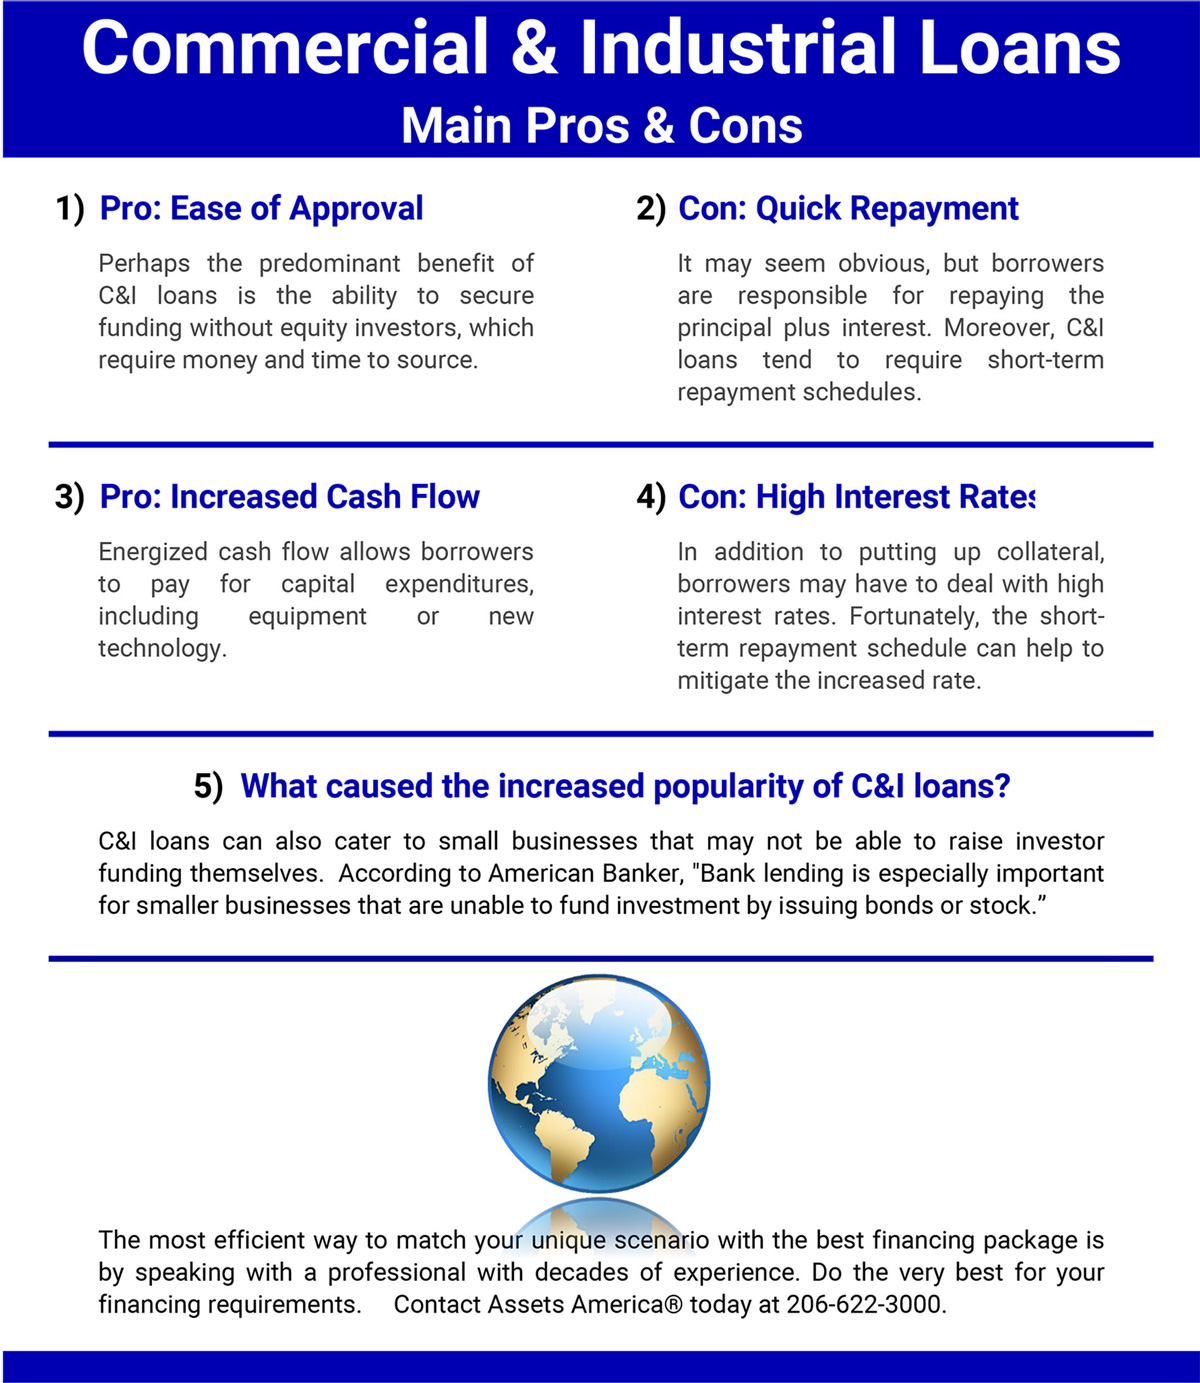 C&I Loans Infographic with Pros and Cons of C&I lending